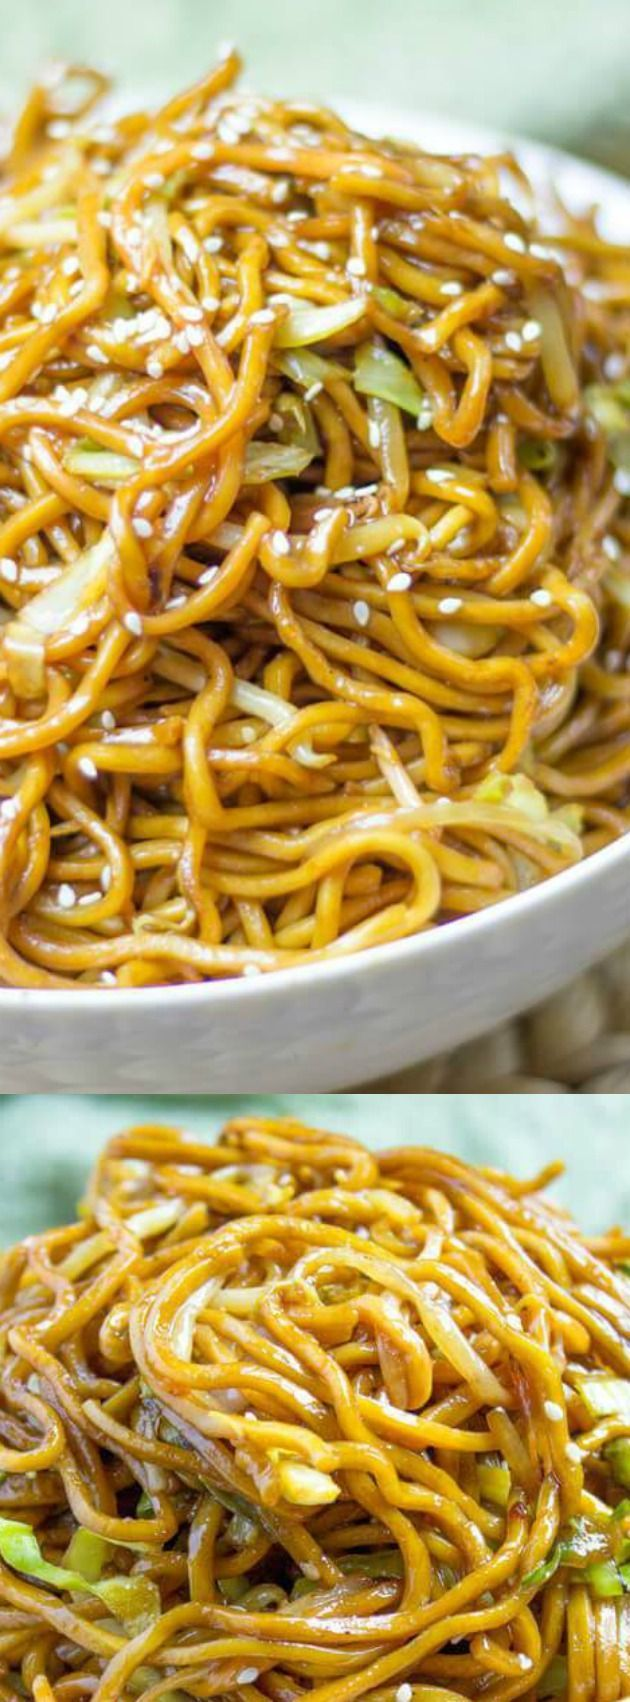 This Classic Chinese Chow Mein from Dinner then Dessert is a staple that you'll definitely want to make the next time your takeout craving sets in. It uses delicious authentic ingredients and is ready in just about 20 minutes — faster than you thought possible!